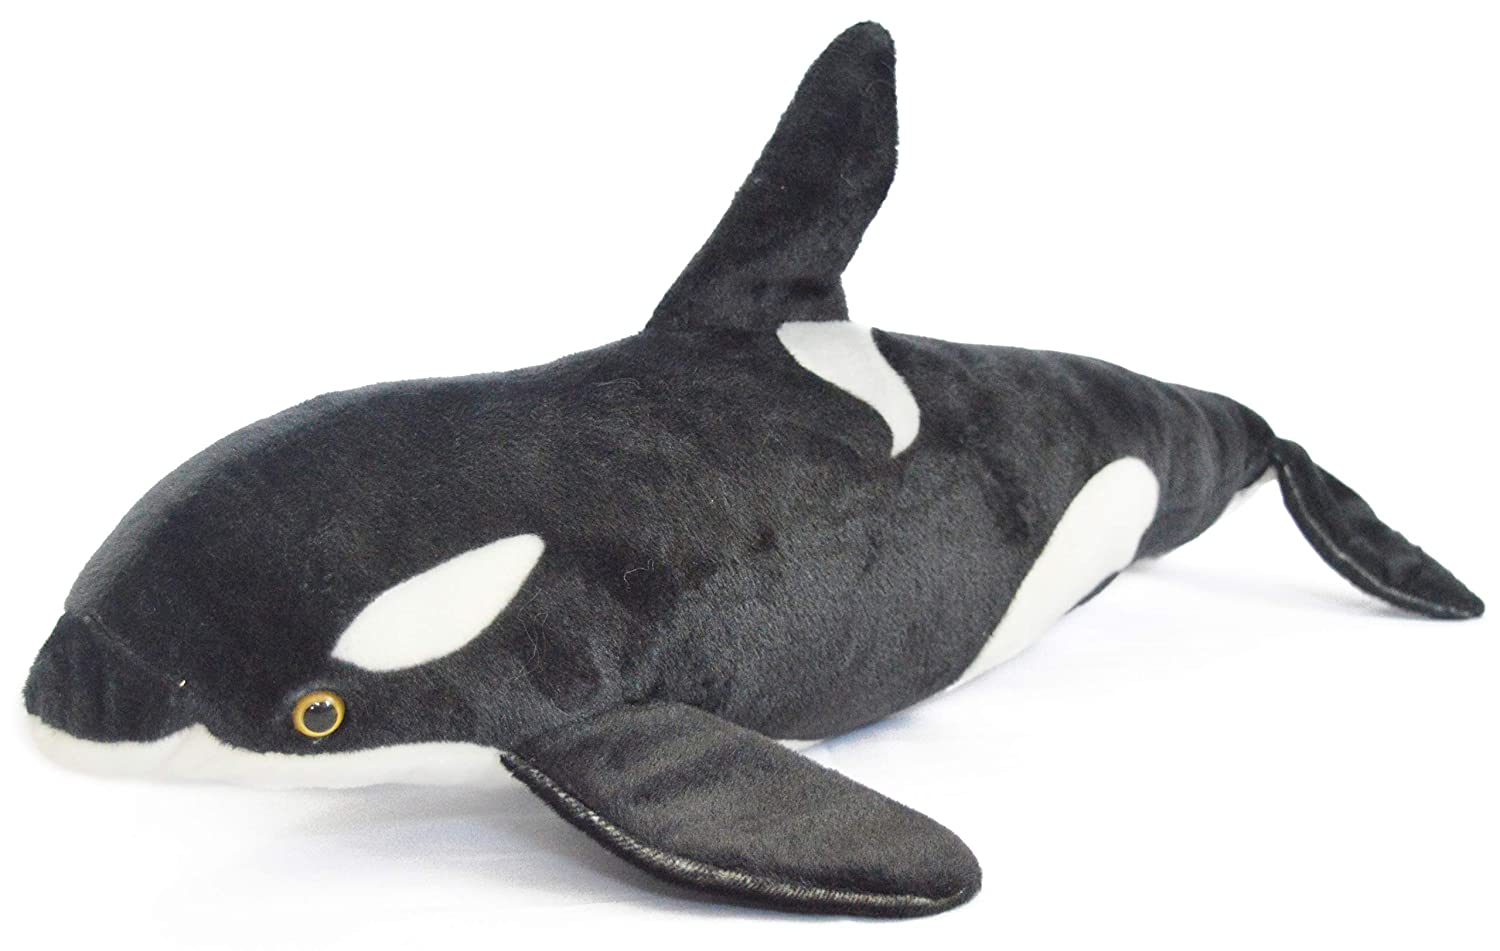 Giant Killer Whale Toys Www Topsimages Com